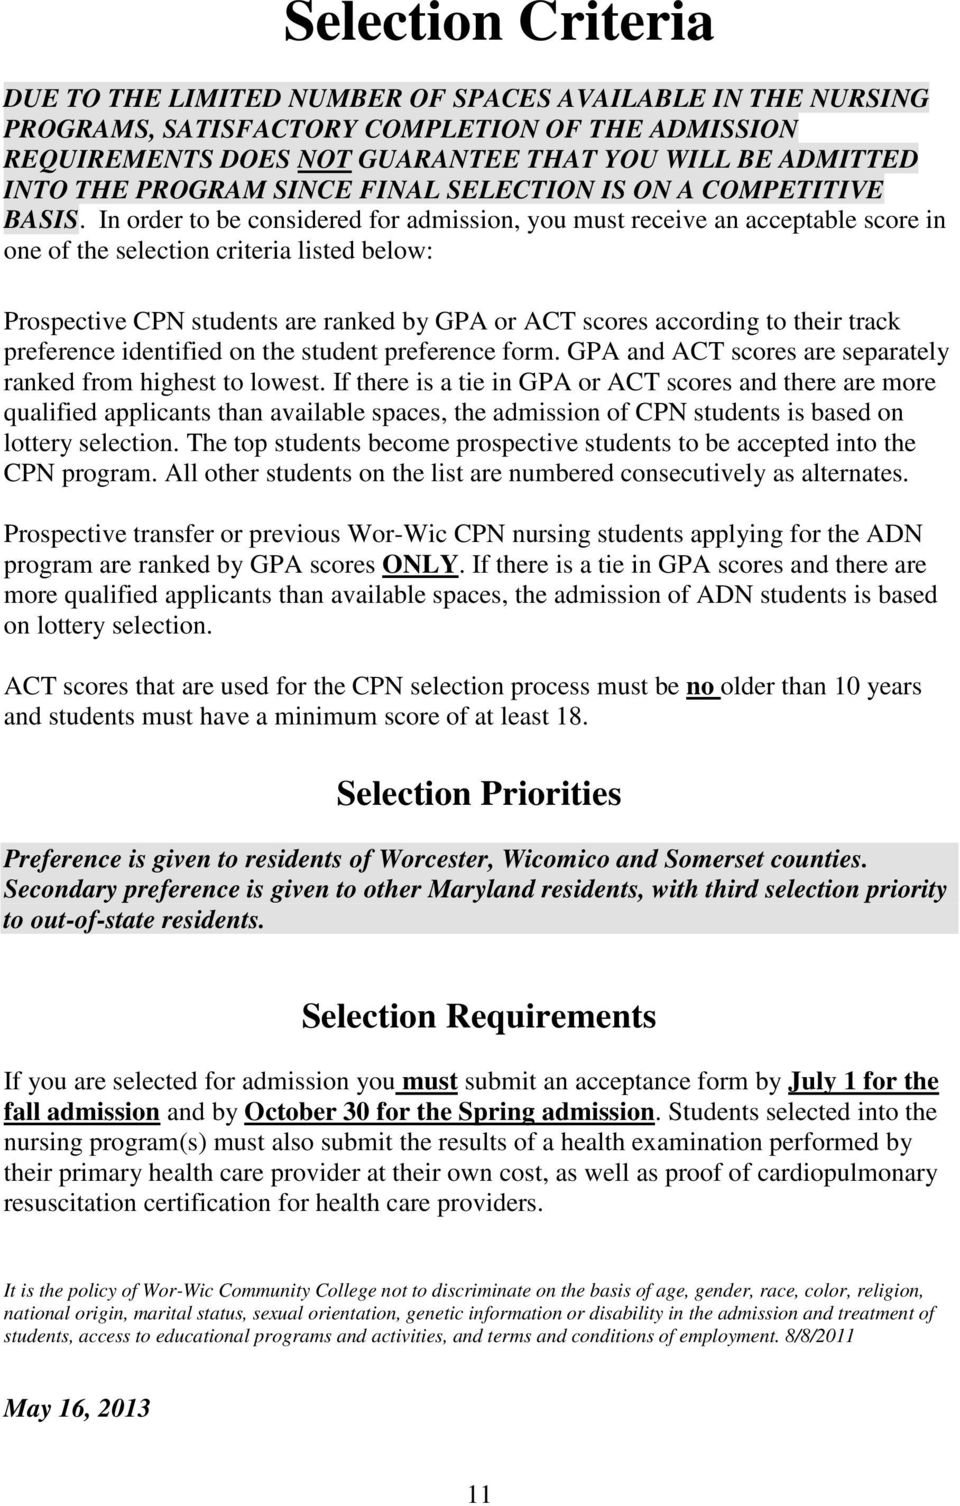 In order to be considered for admission, you must receive an acceptable score in one of the selection criteria listed below: Prospective CPN students are ranked by GPA or ACT scores according to